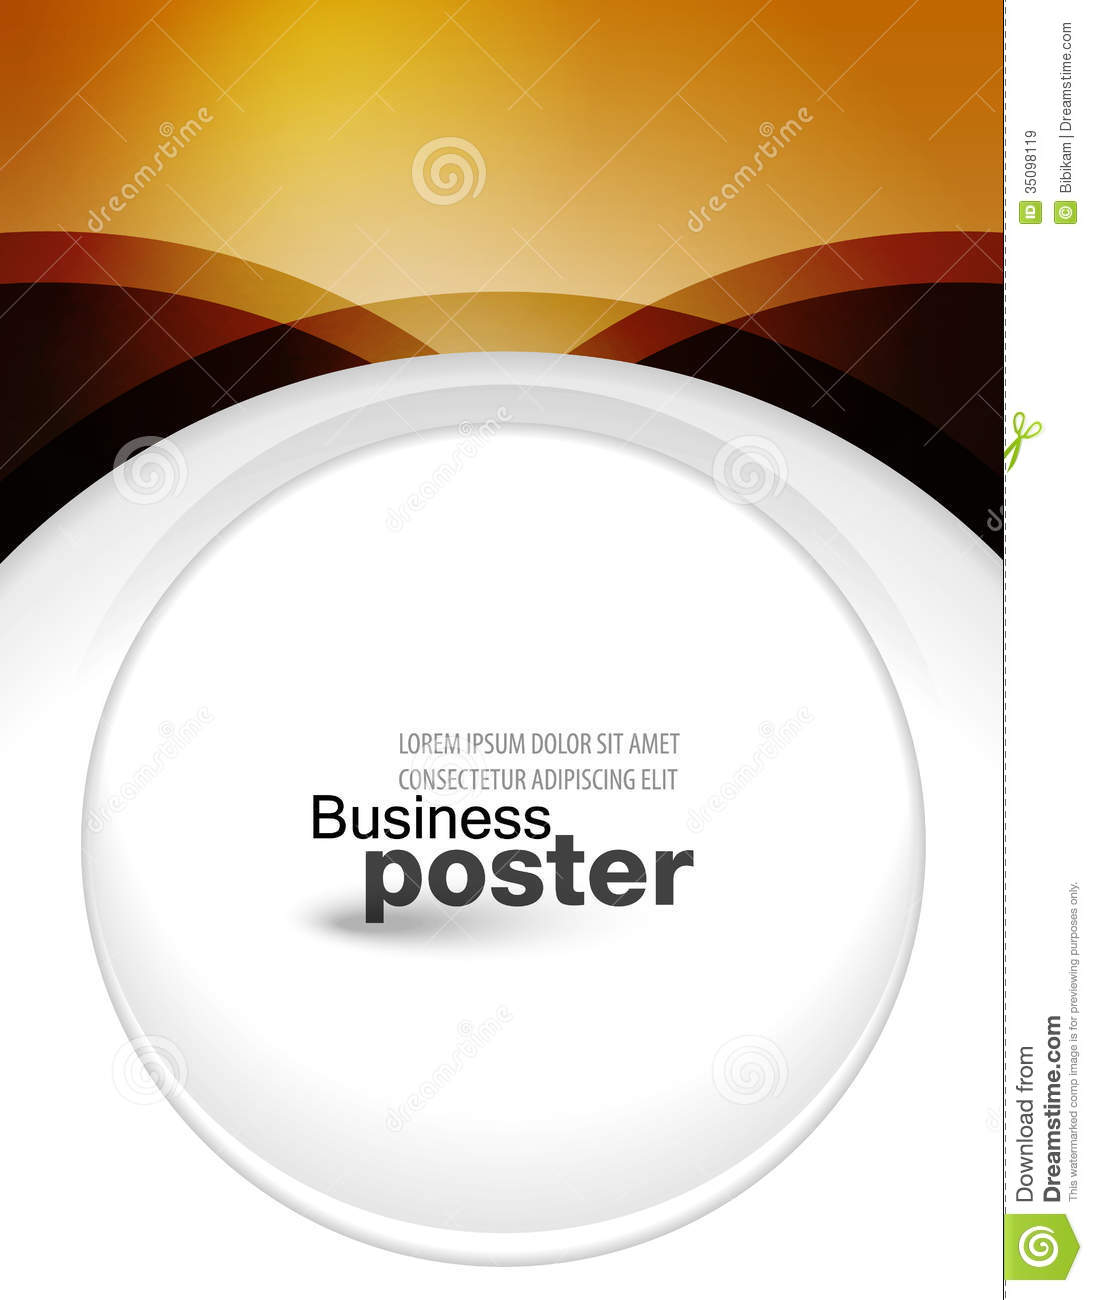 Poster design software free download -  Designer Of Business Post Royalty Free Download